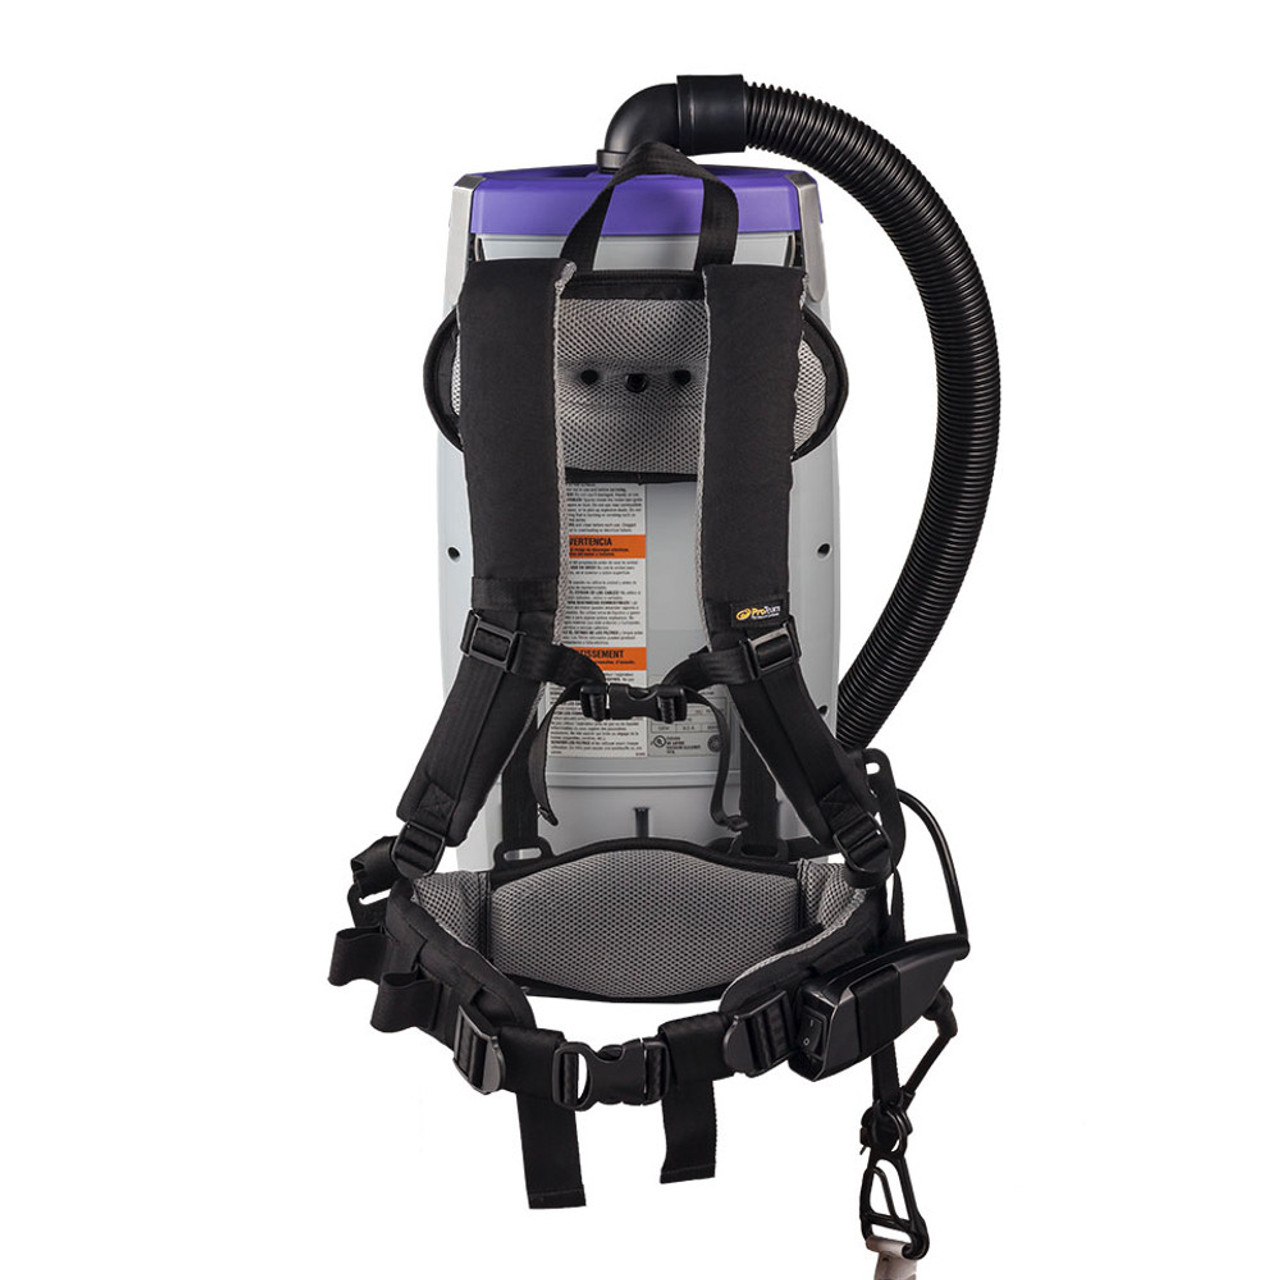 The SuperCoach Pro 10 has an adjustable harness balances the vacuum to make workers comfortable.